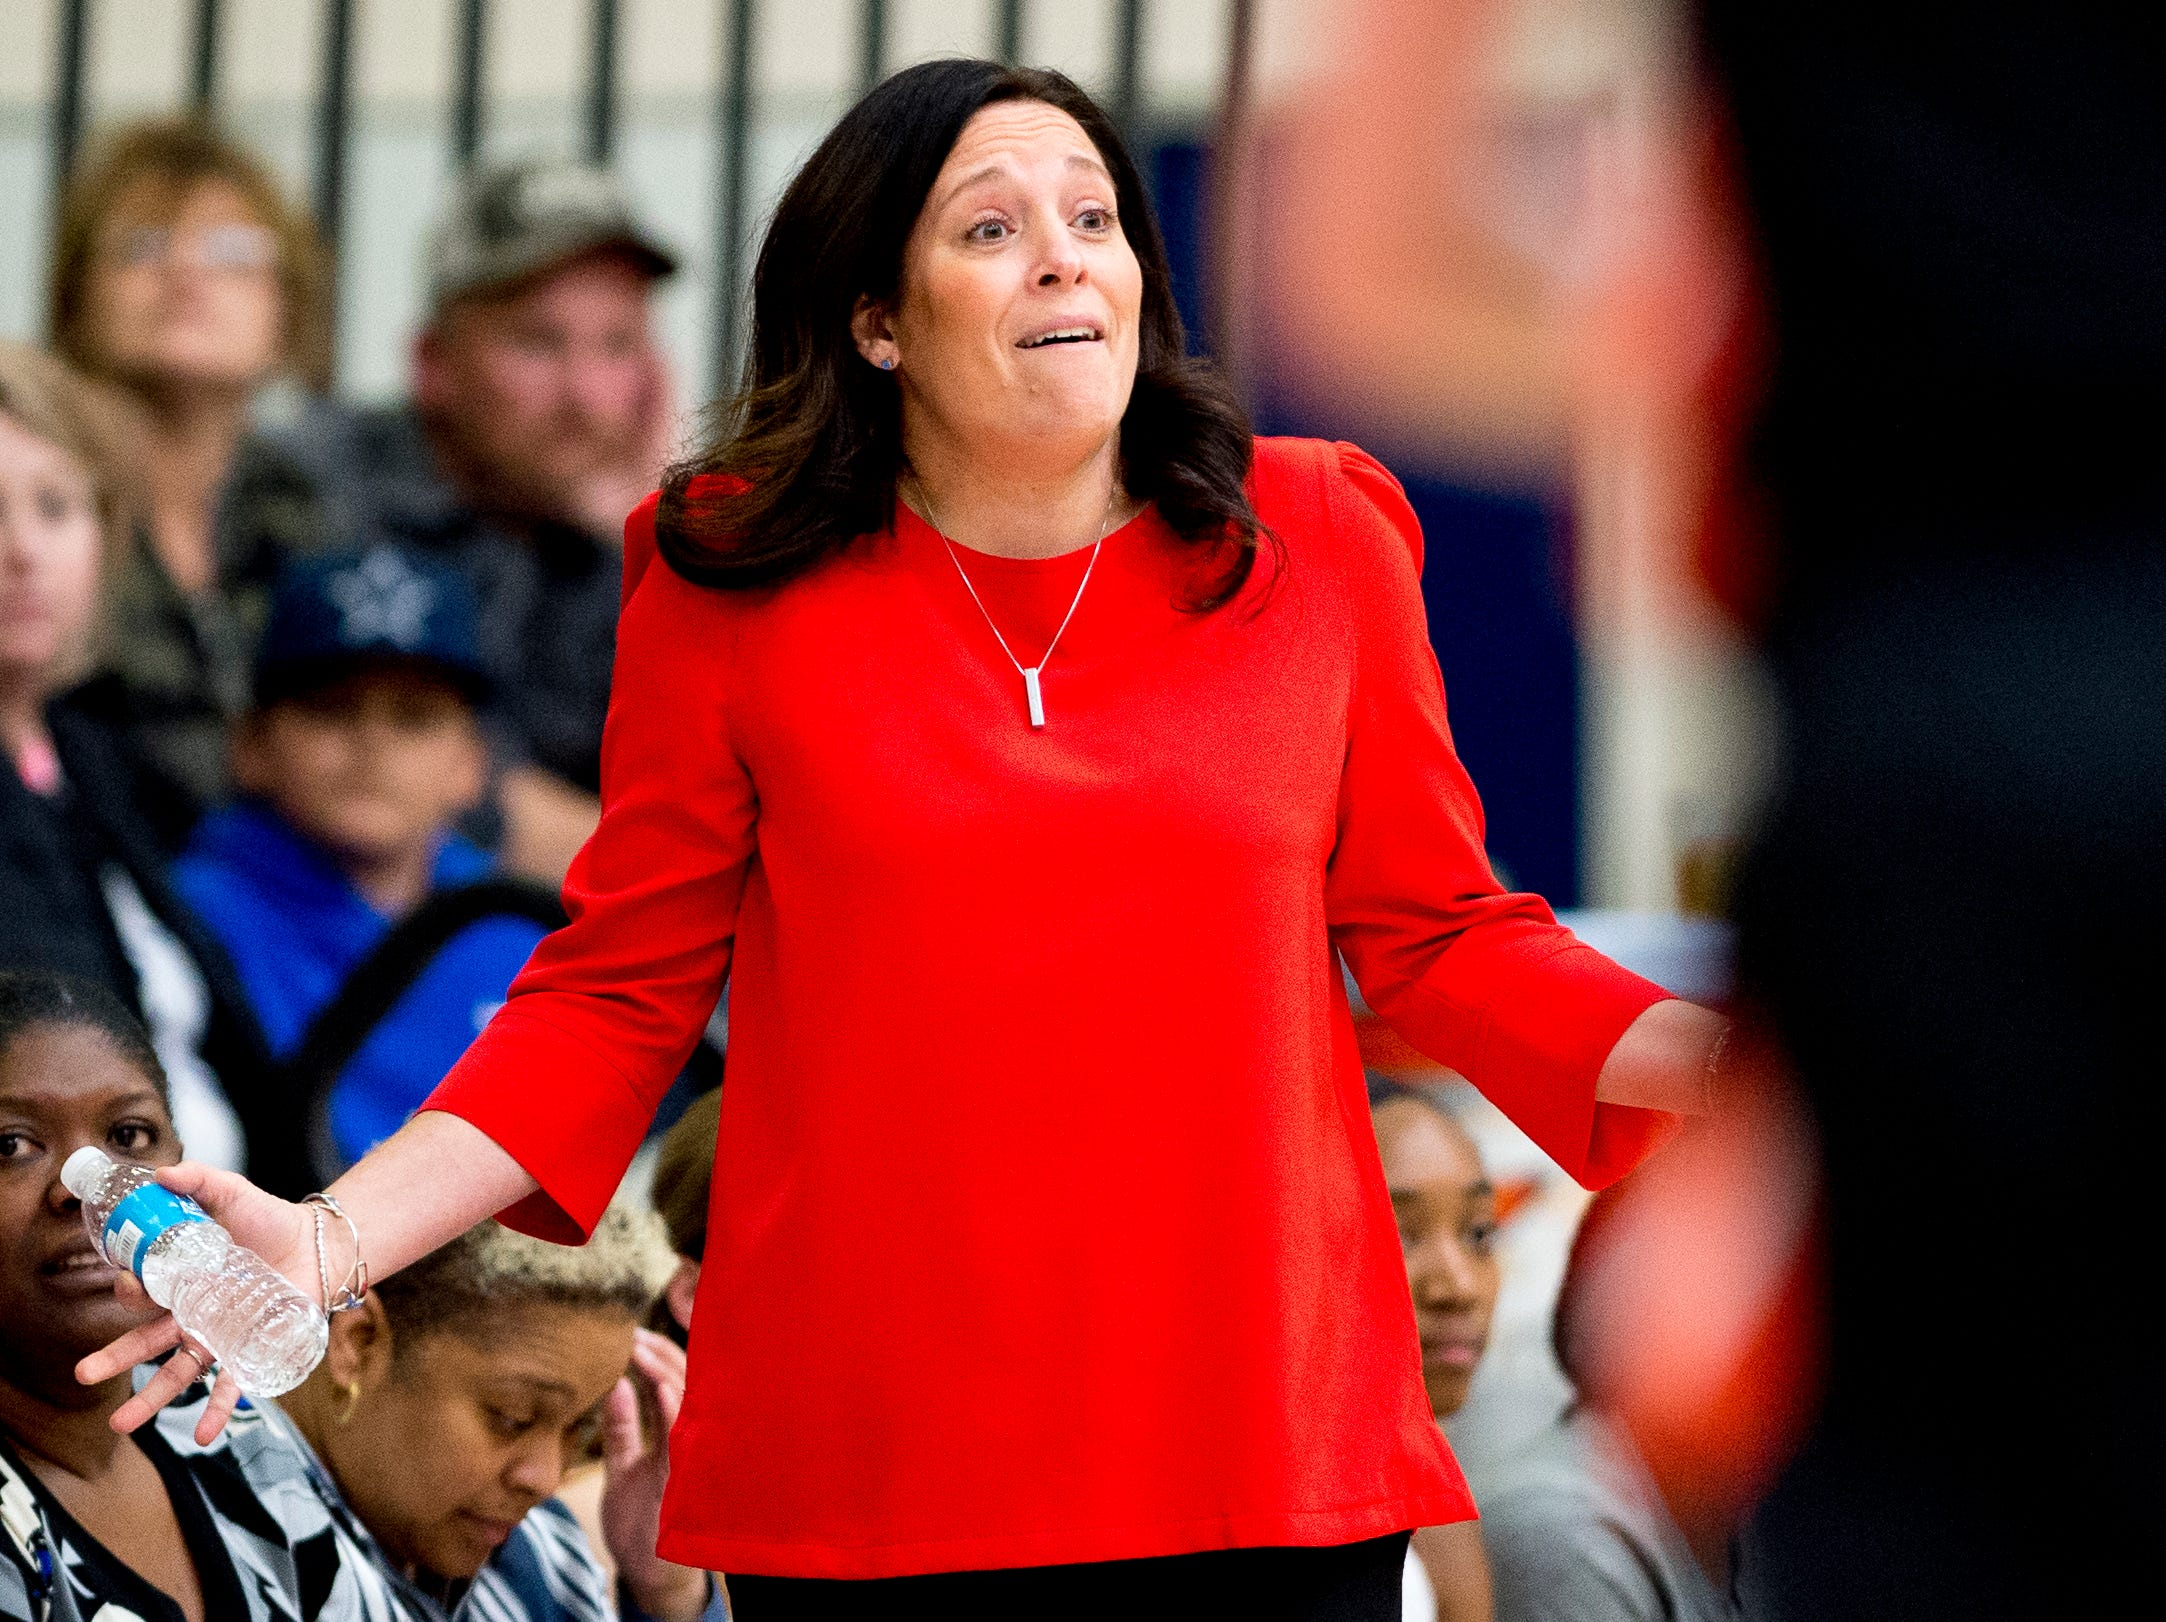 Oak Ridge Girls Head Coach Paige Redman reacts to the game during a game between semifinal game between Oak Ridge and Powell at Karns High School in Knoxville, Tennessee on Saturday, February 16, 2019.